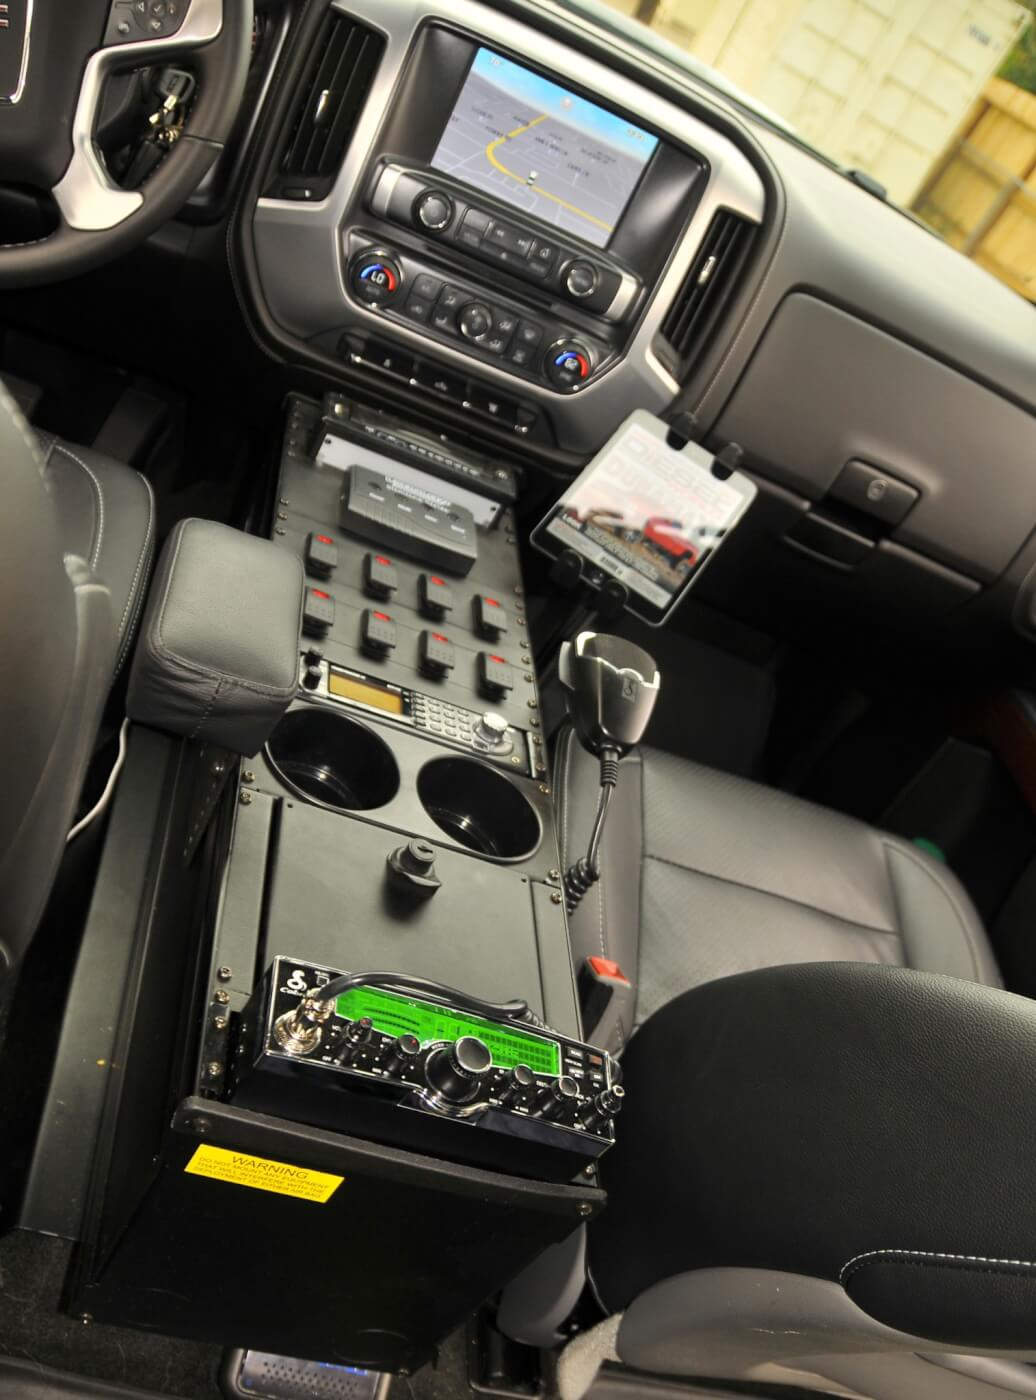 There's a slew of electronics in the 2015 GMC, including a CB radio, police scanner, iPad and more.